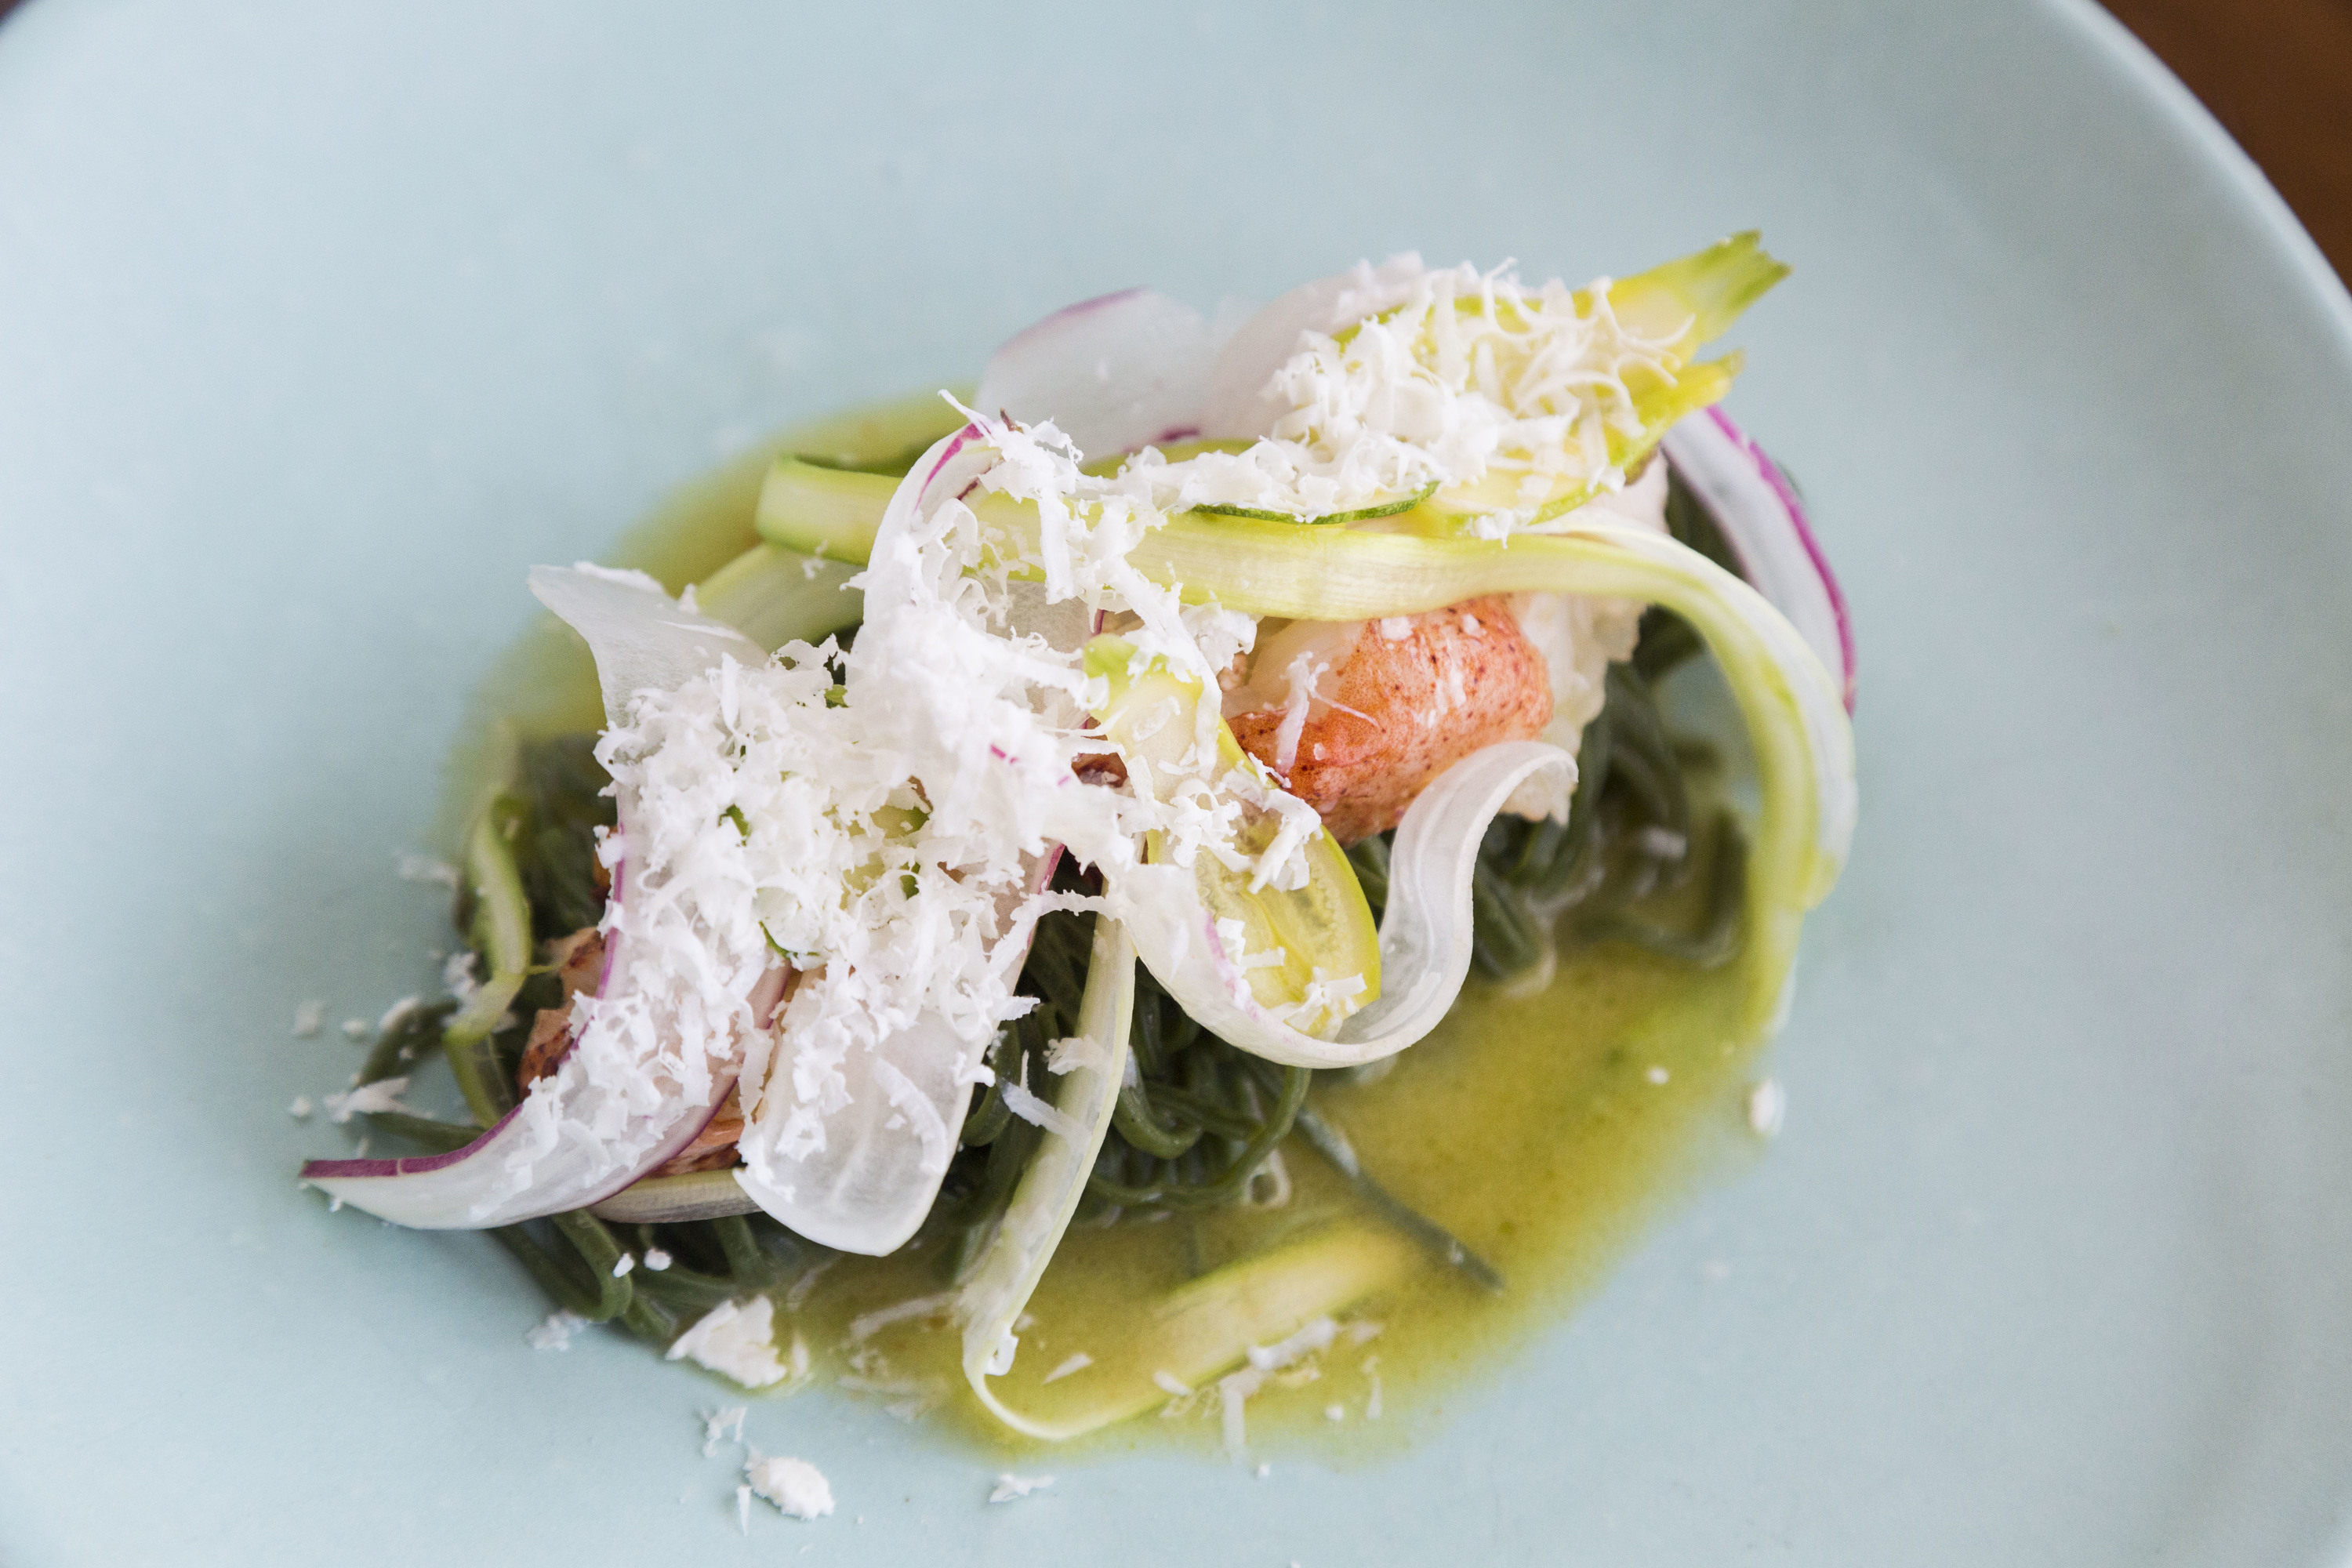 Tingling nettle pasta with crab claw at Elizabeth